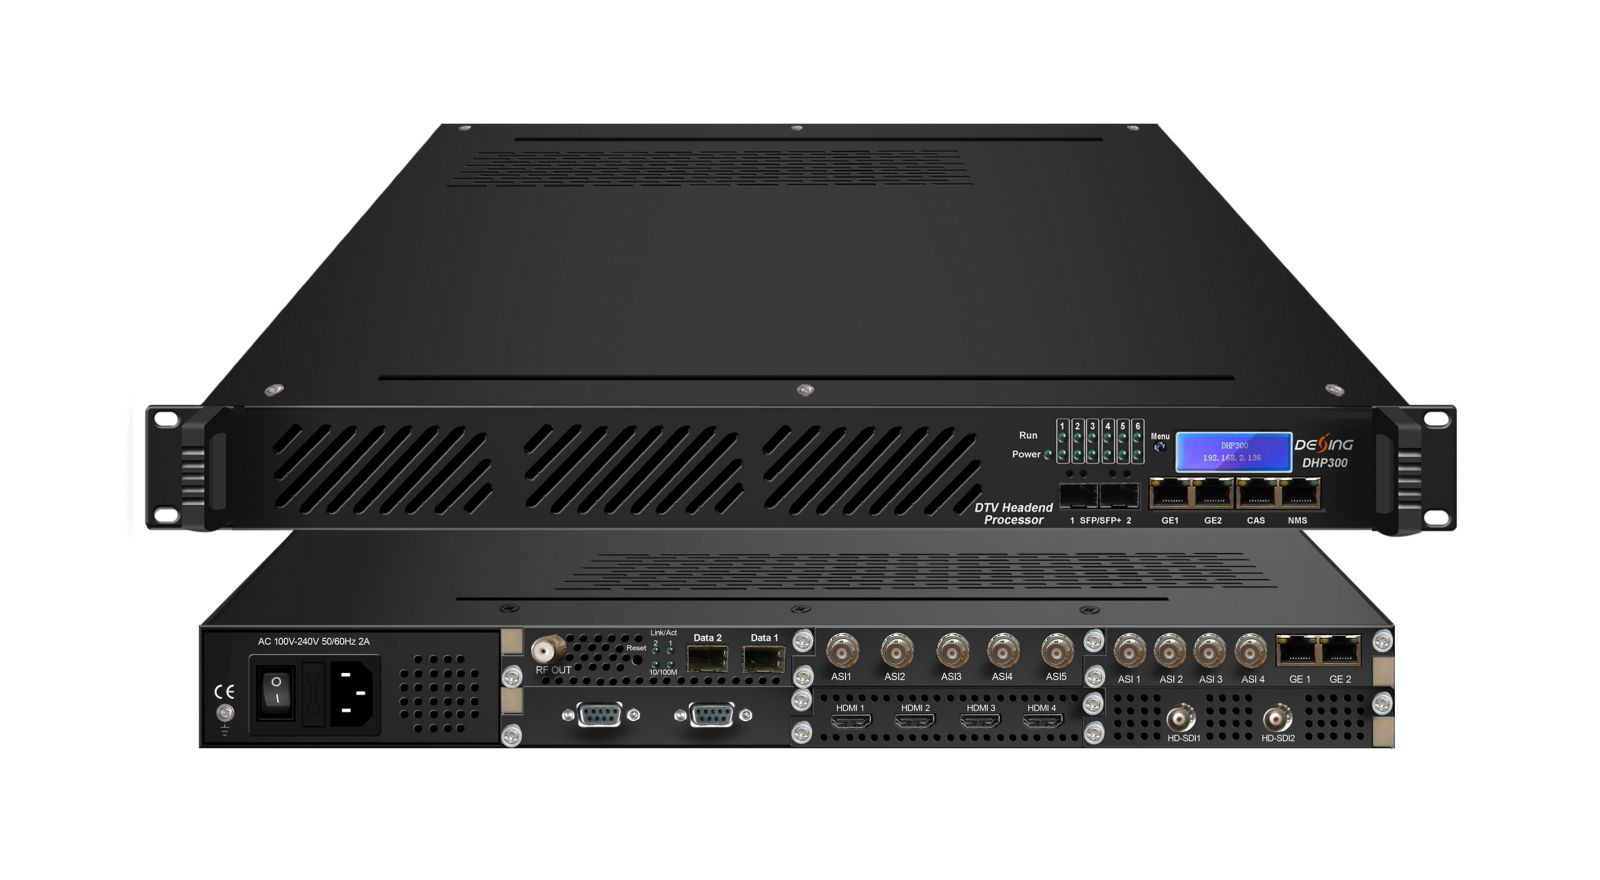 DHP300 DTV head-end processor